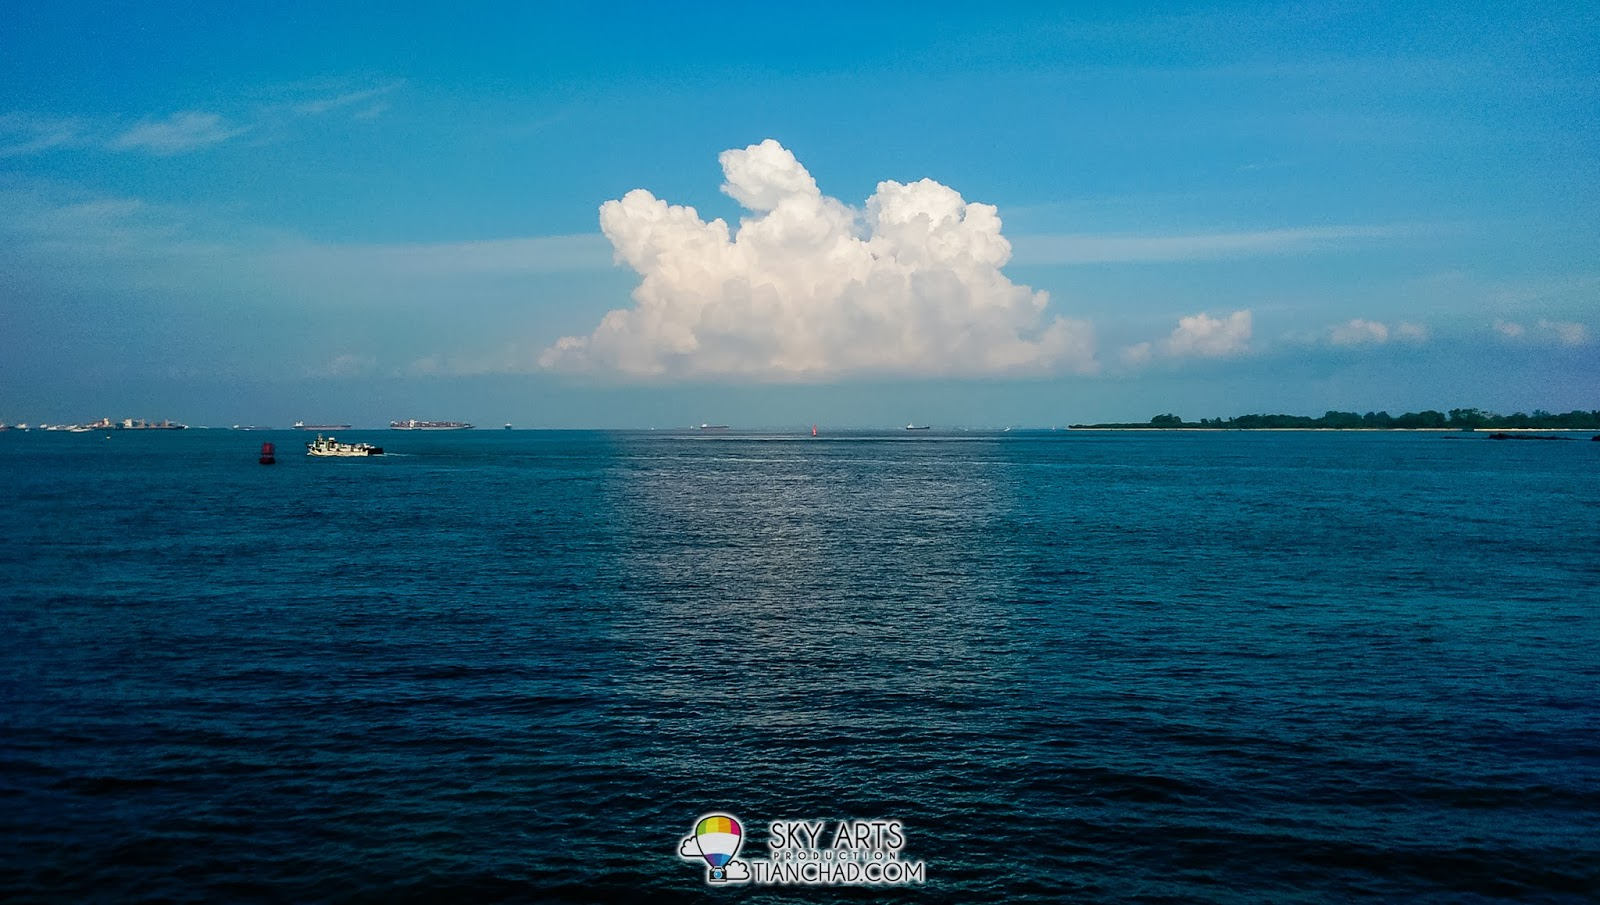 Fluffy clouds above the sea while we hangout at Sentosa Island. Captured using HTC M8